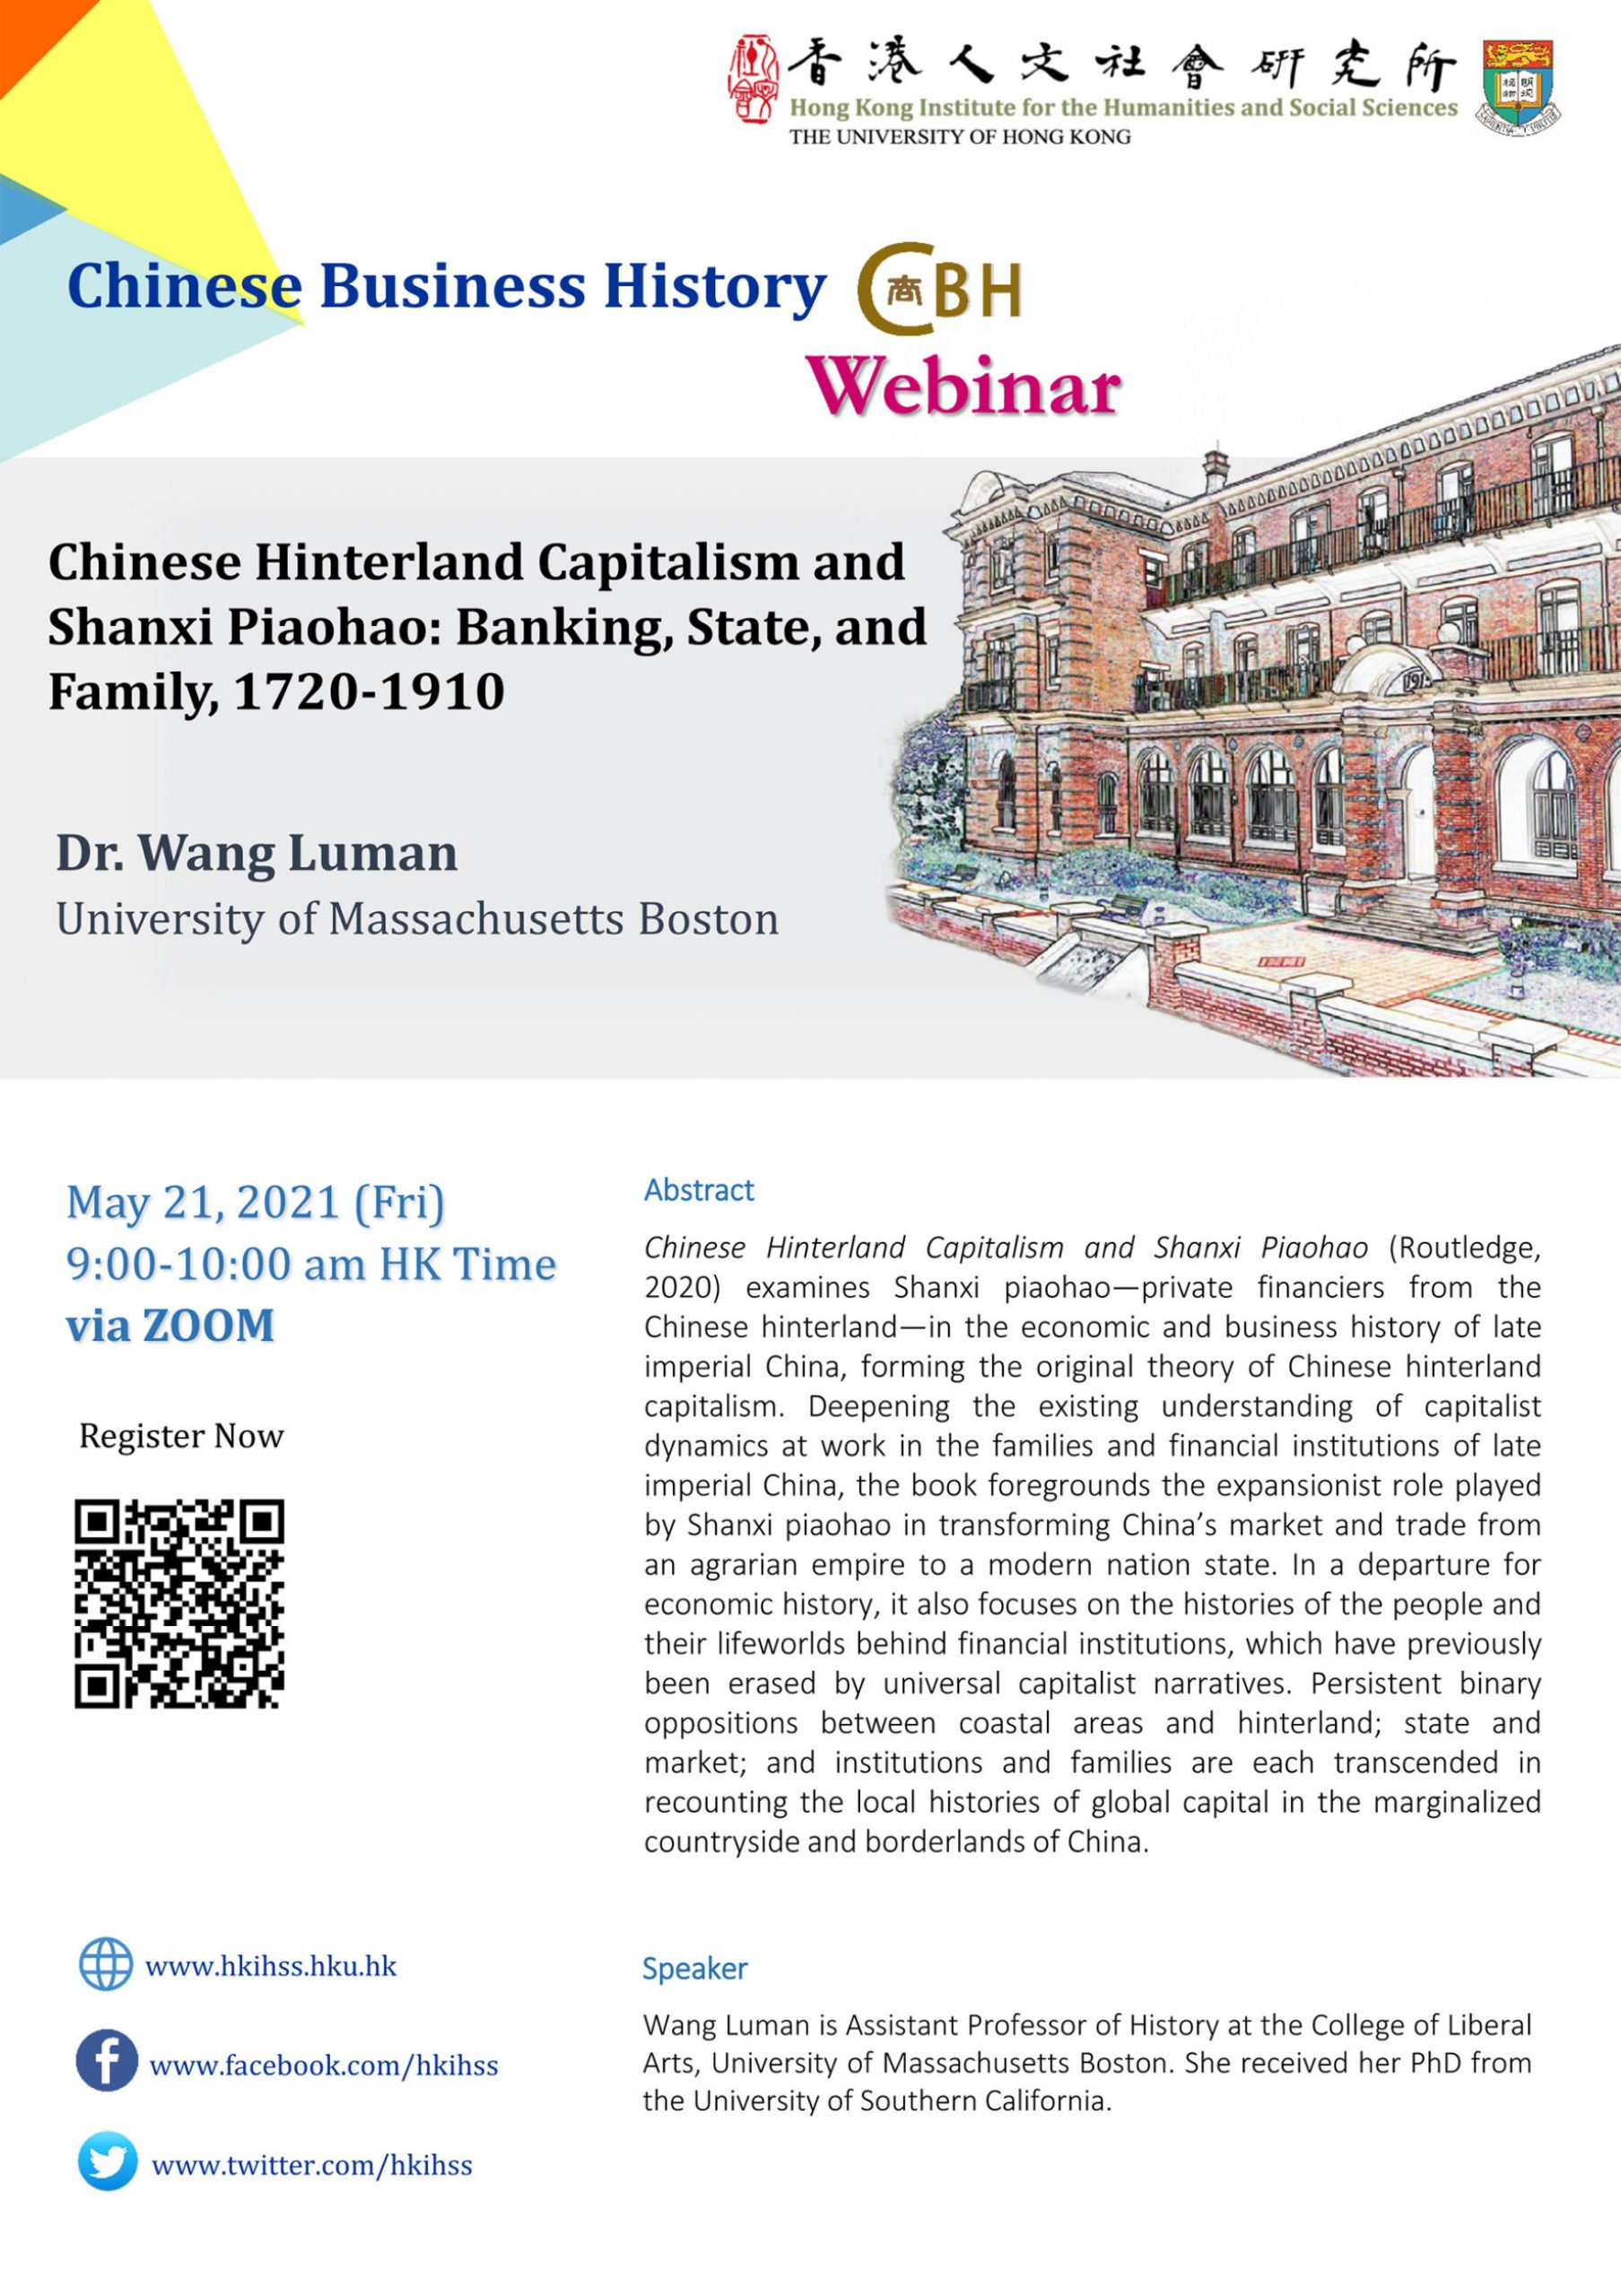 """Chinese Business History Webinar on """"Chinese Hinterland Capitalism and Shanxi Piaohao: Banking, State, and Family, 1720-1910"""" by Dr. Wang Luman (May 21, 2021)"""